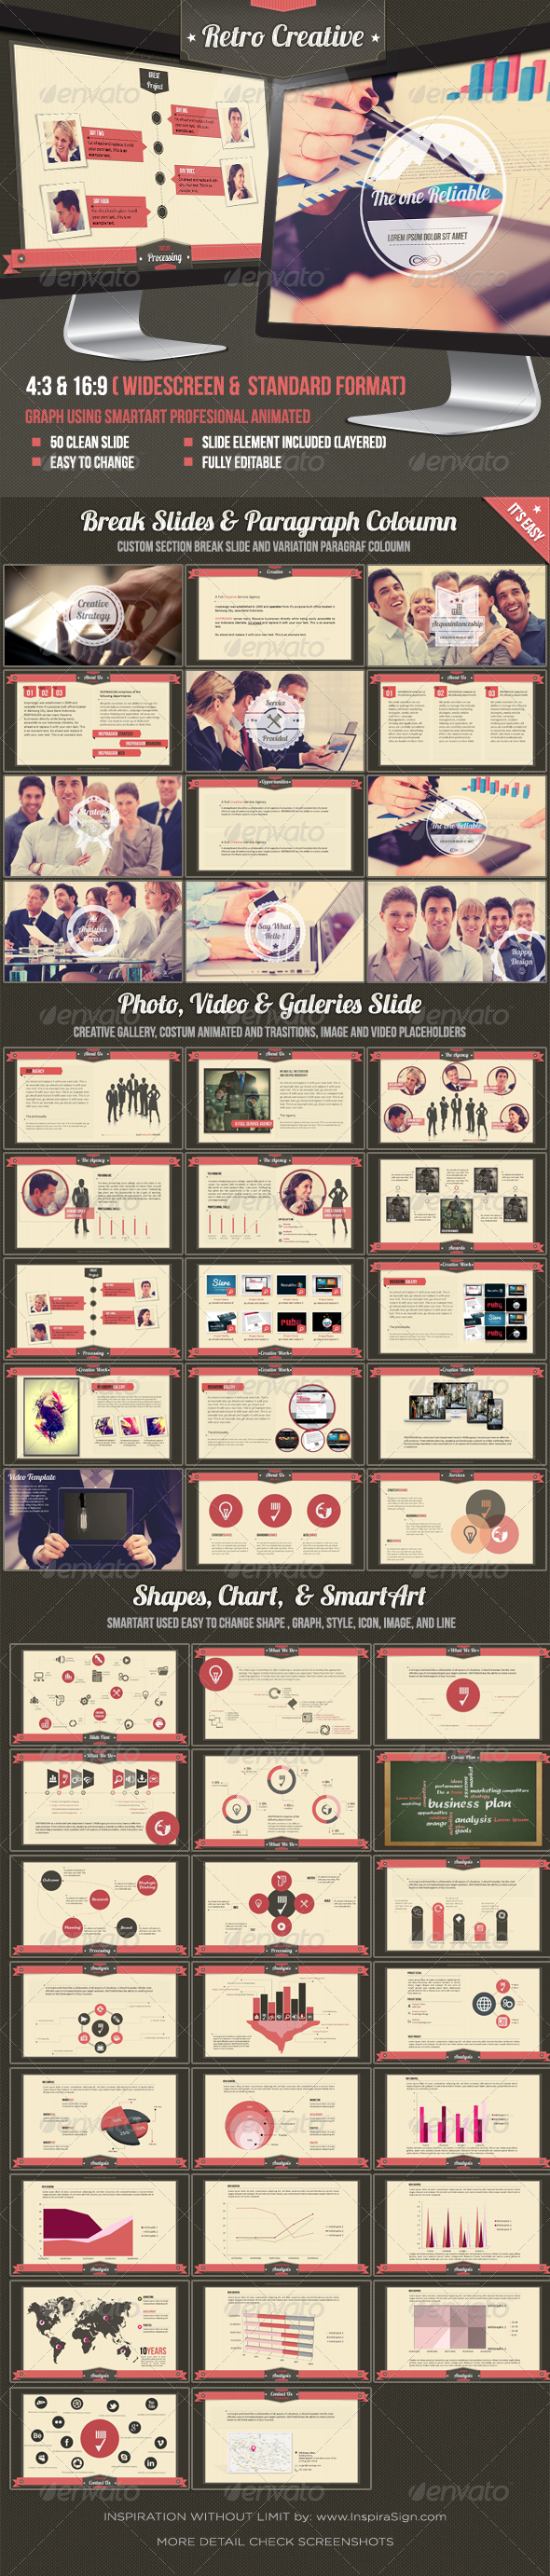 GraphicRiver Retro Business Creative Agency Powerpoint Template 3954933